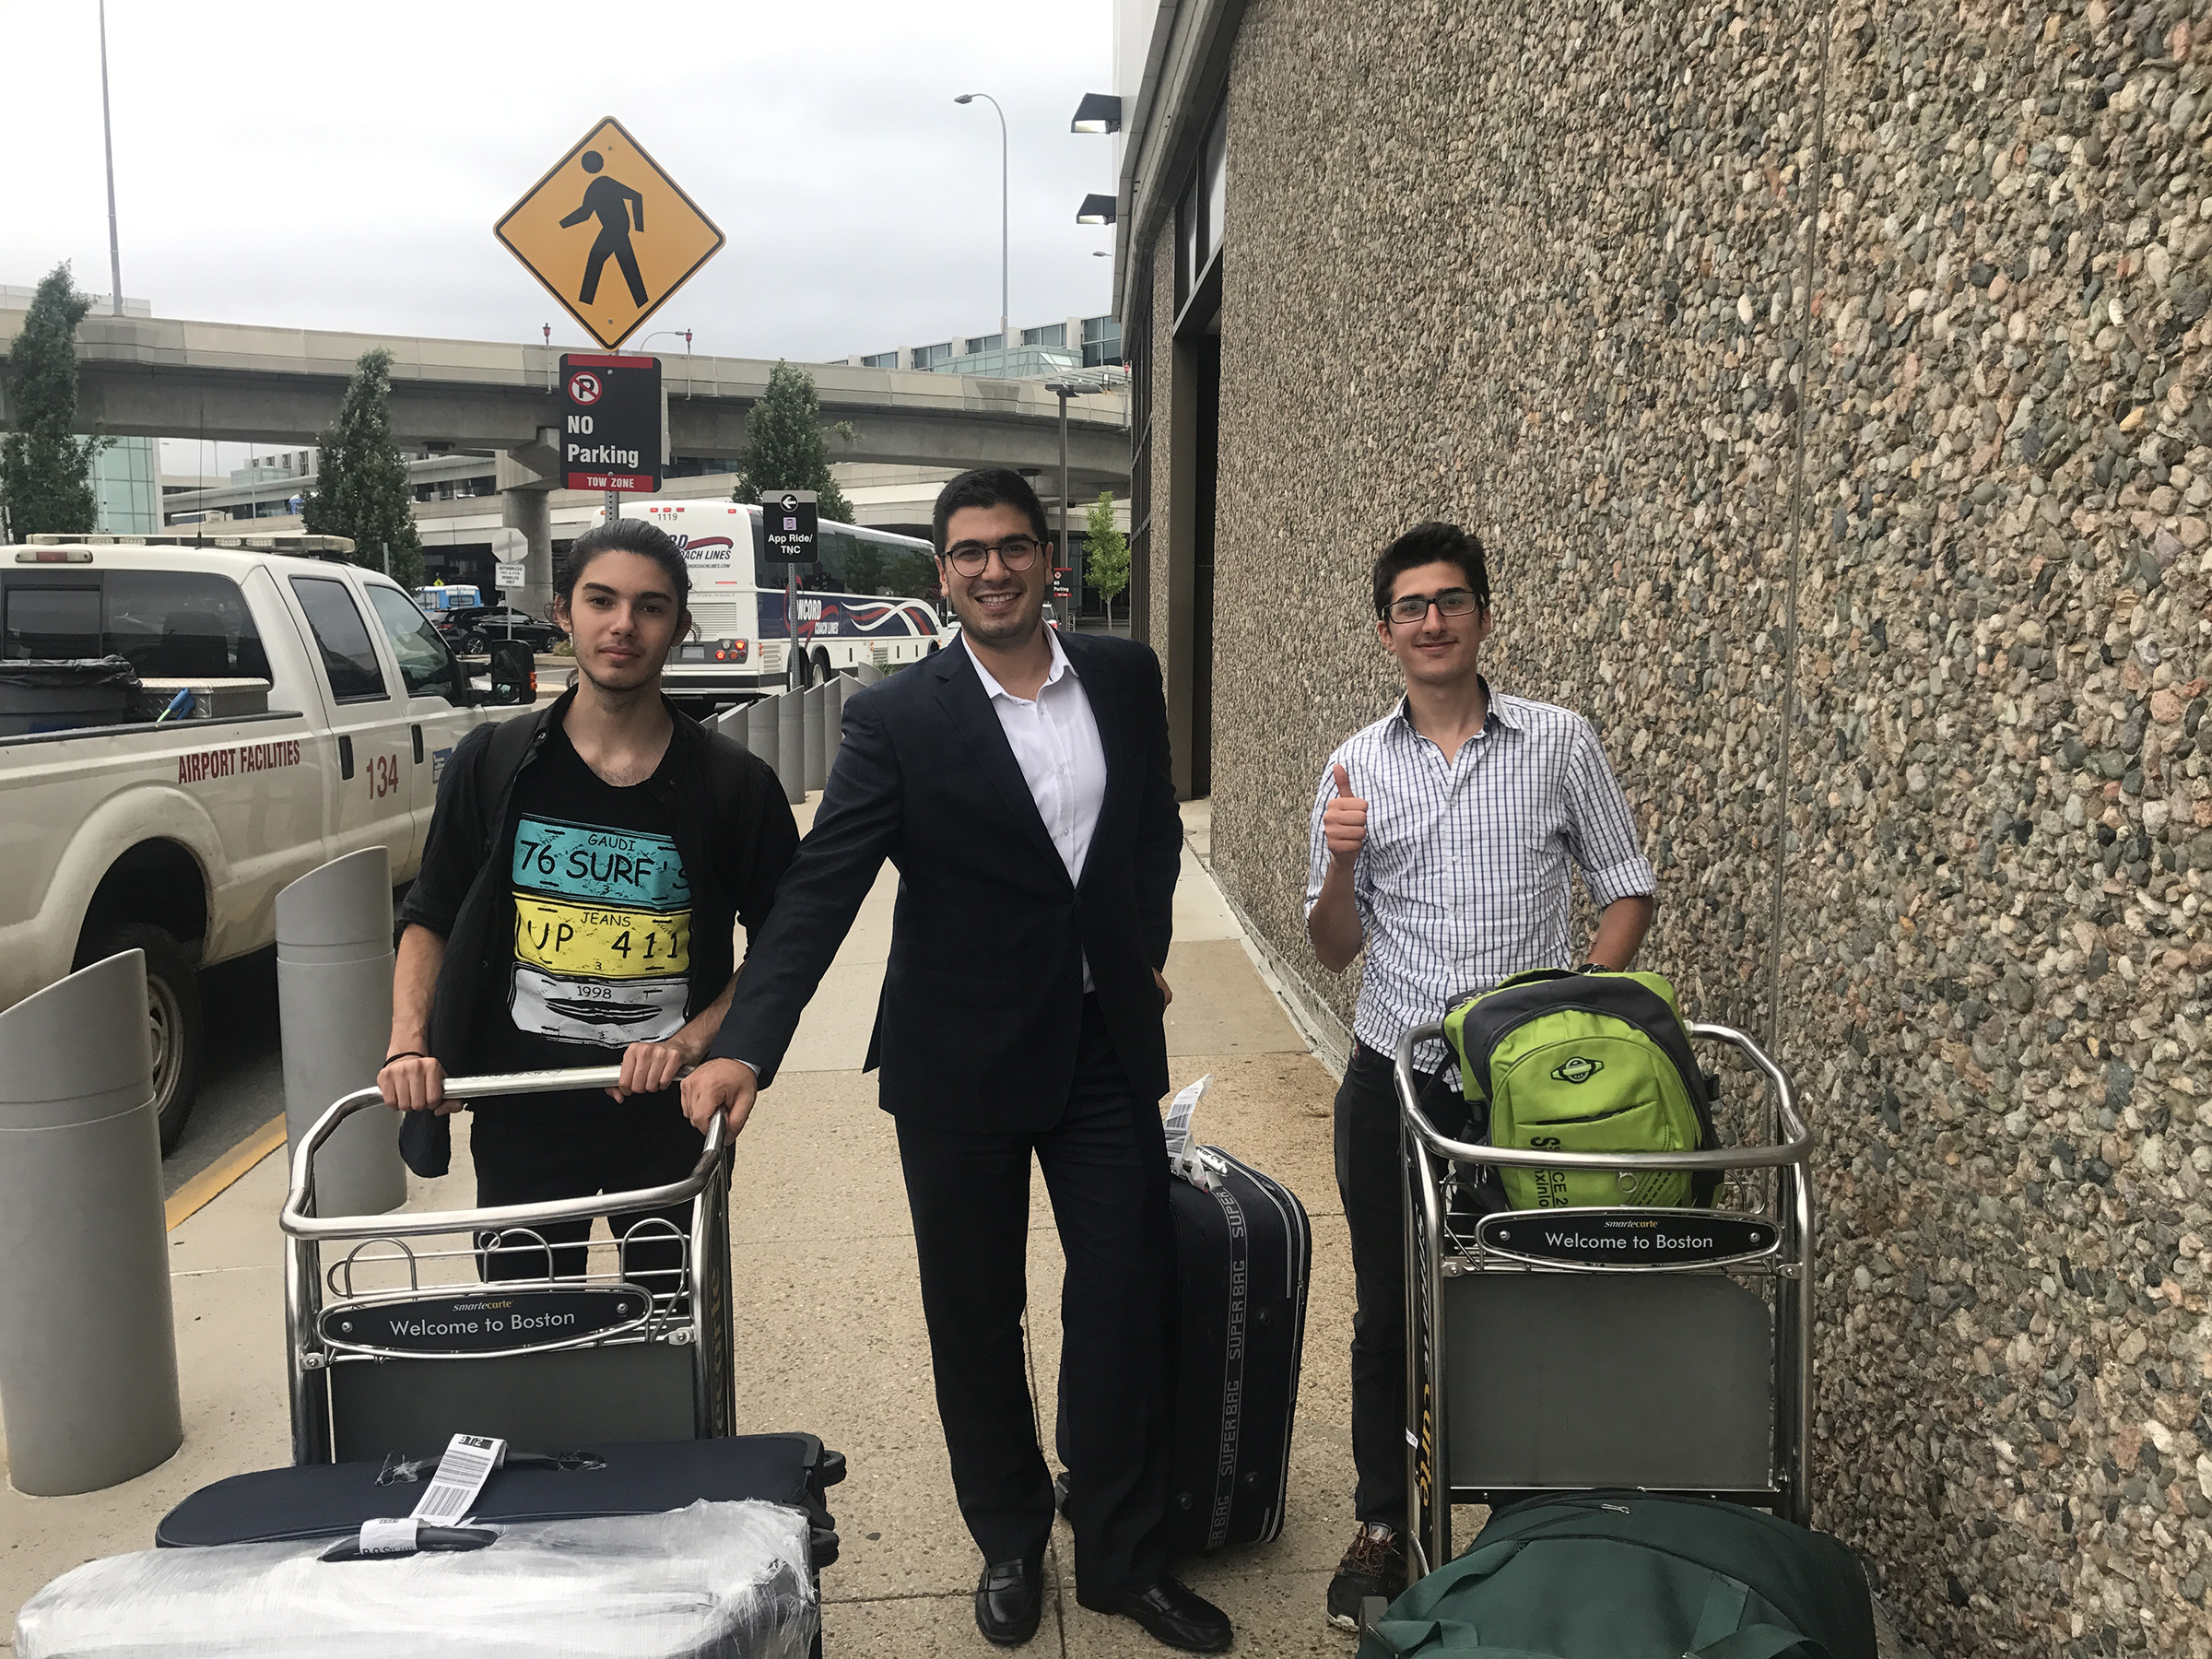 George Batah picking up Nabil Khalil from Aleppo and Hussam Salhab from Damascus at Logan Airport in Boston, on Aug. 18, 2017.